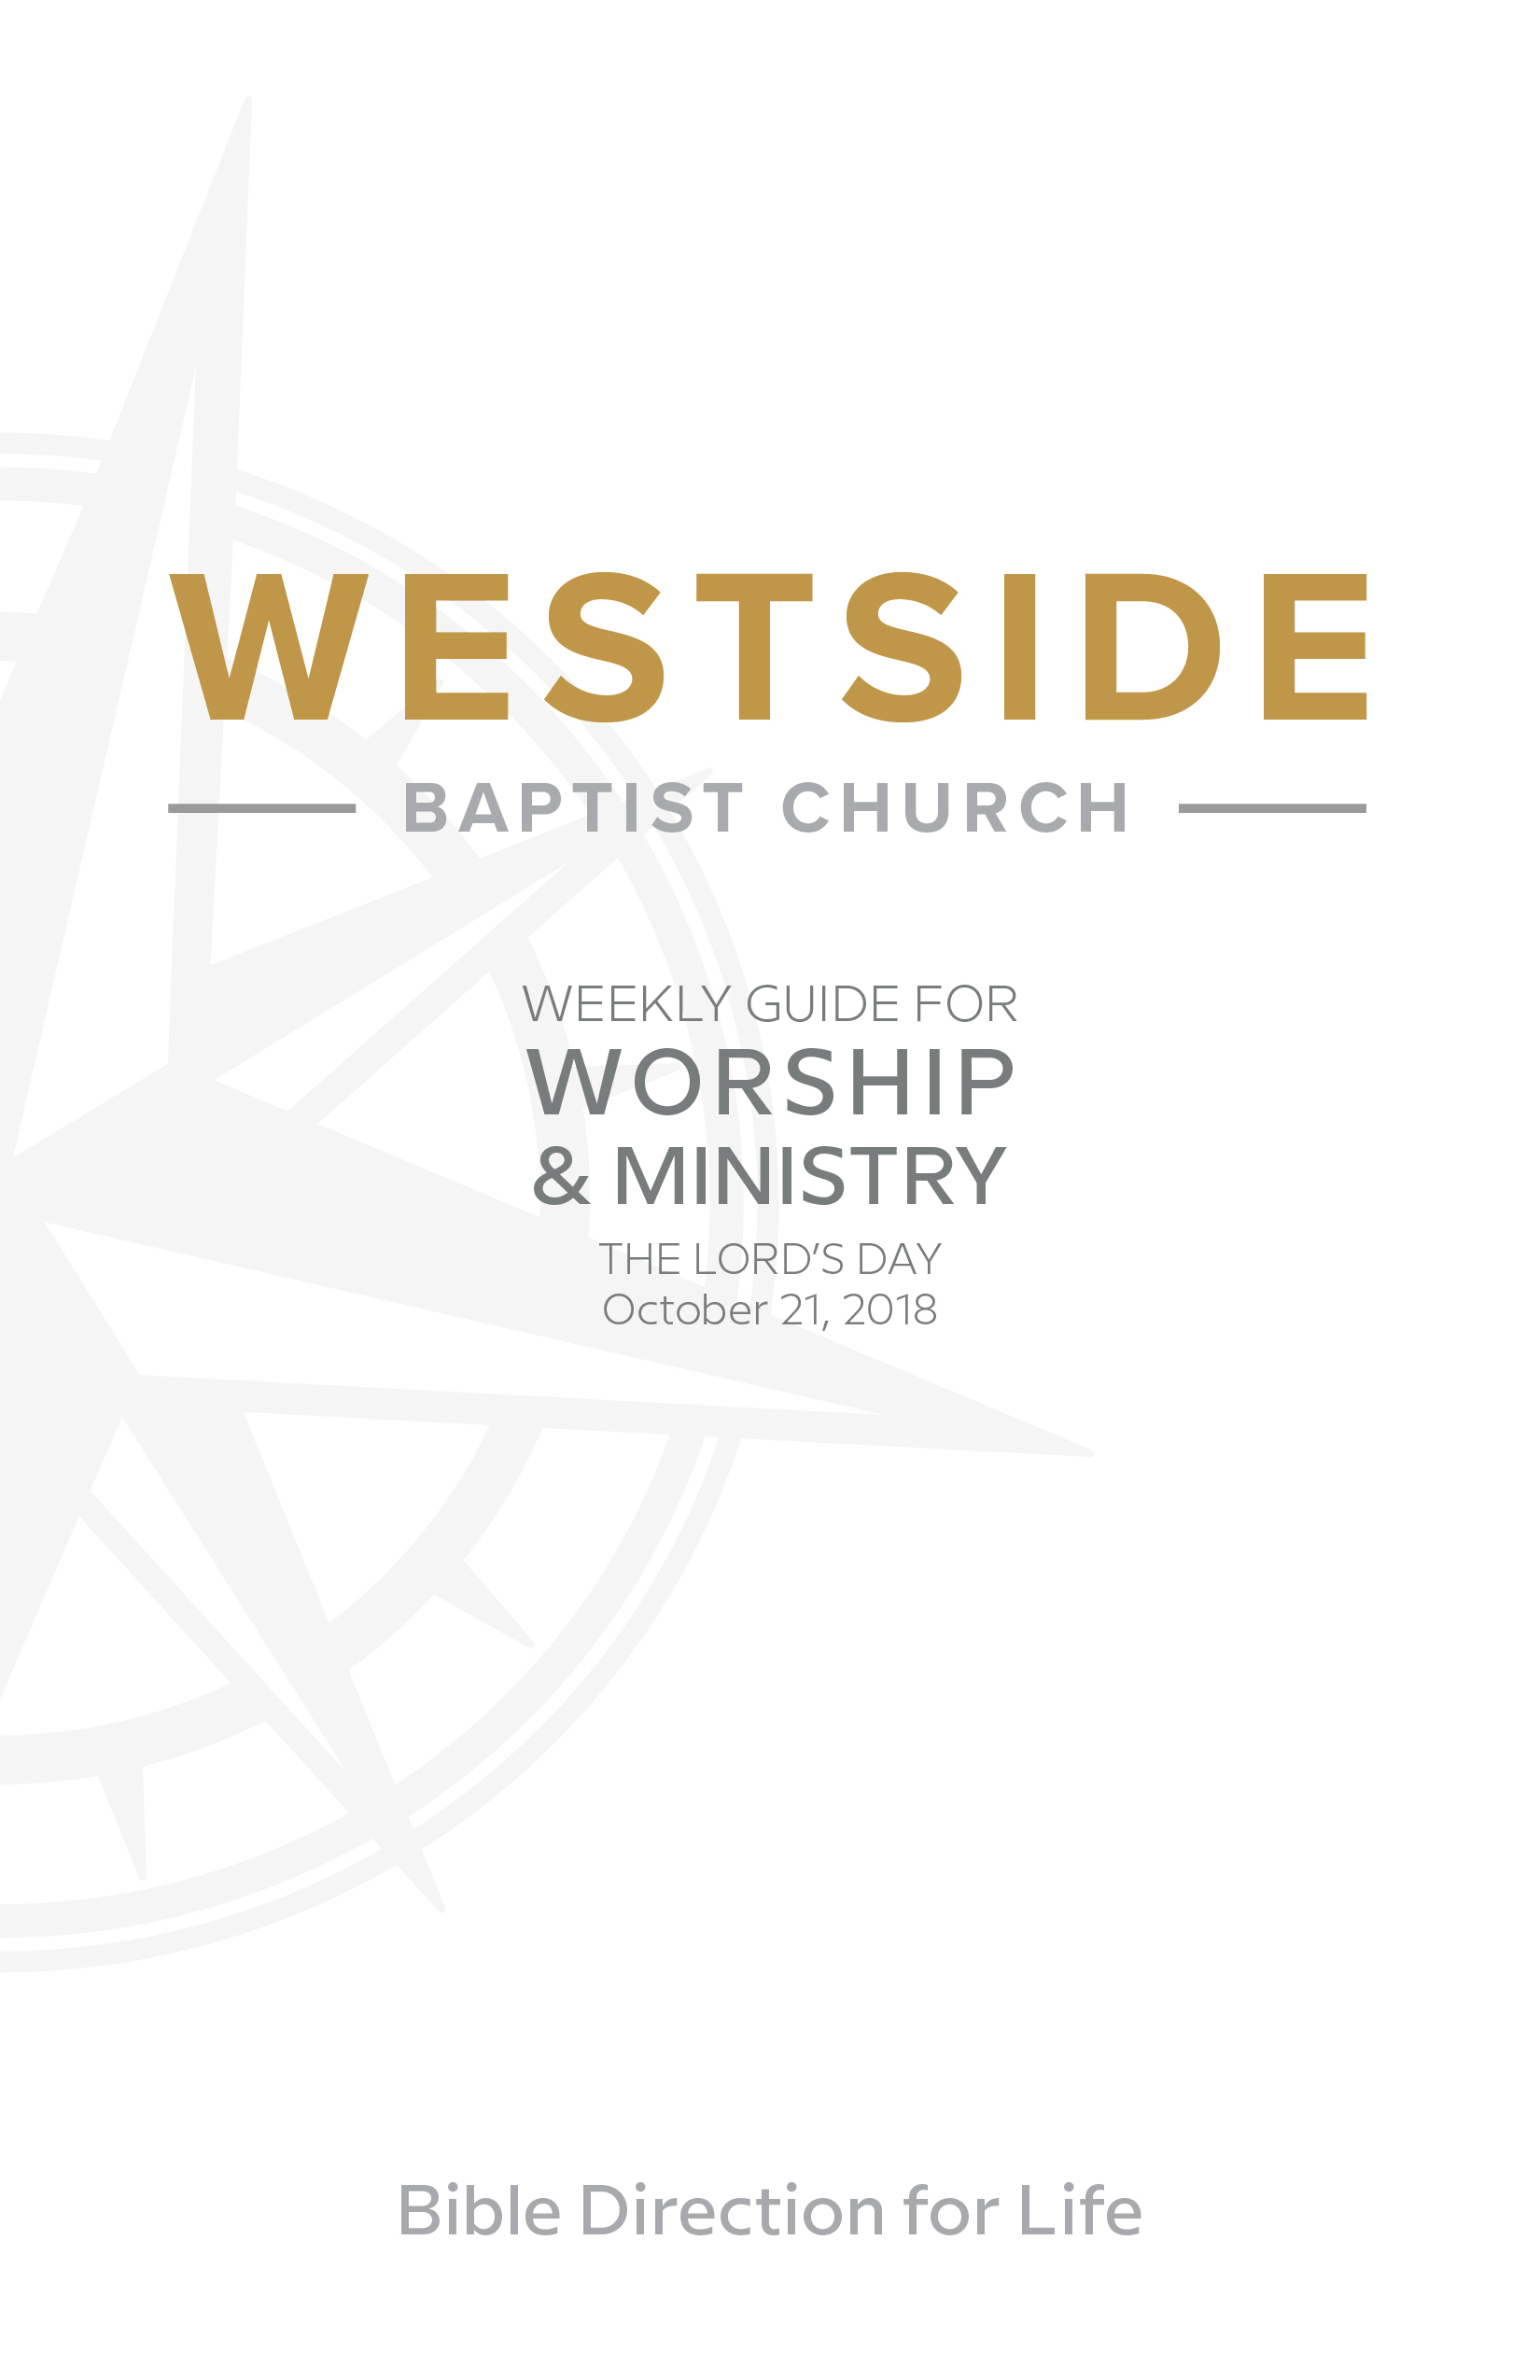 Weekly Guide for Worship and Ministry—October 21